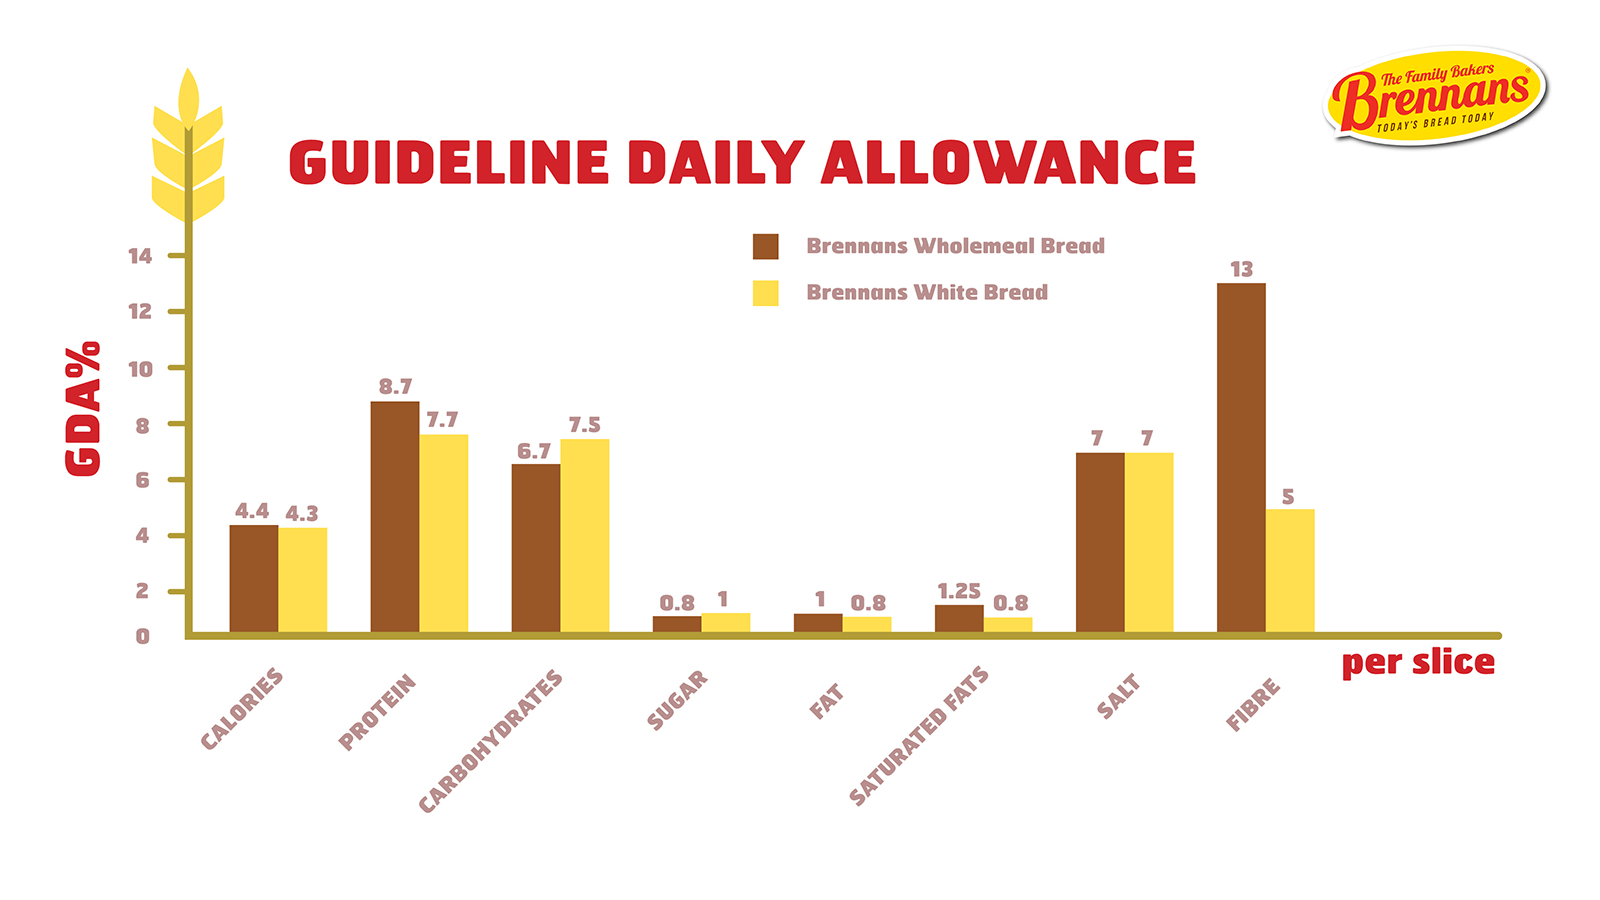 Guideline Daily Allowance